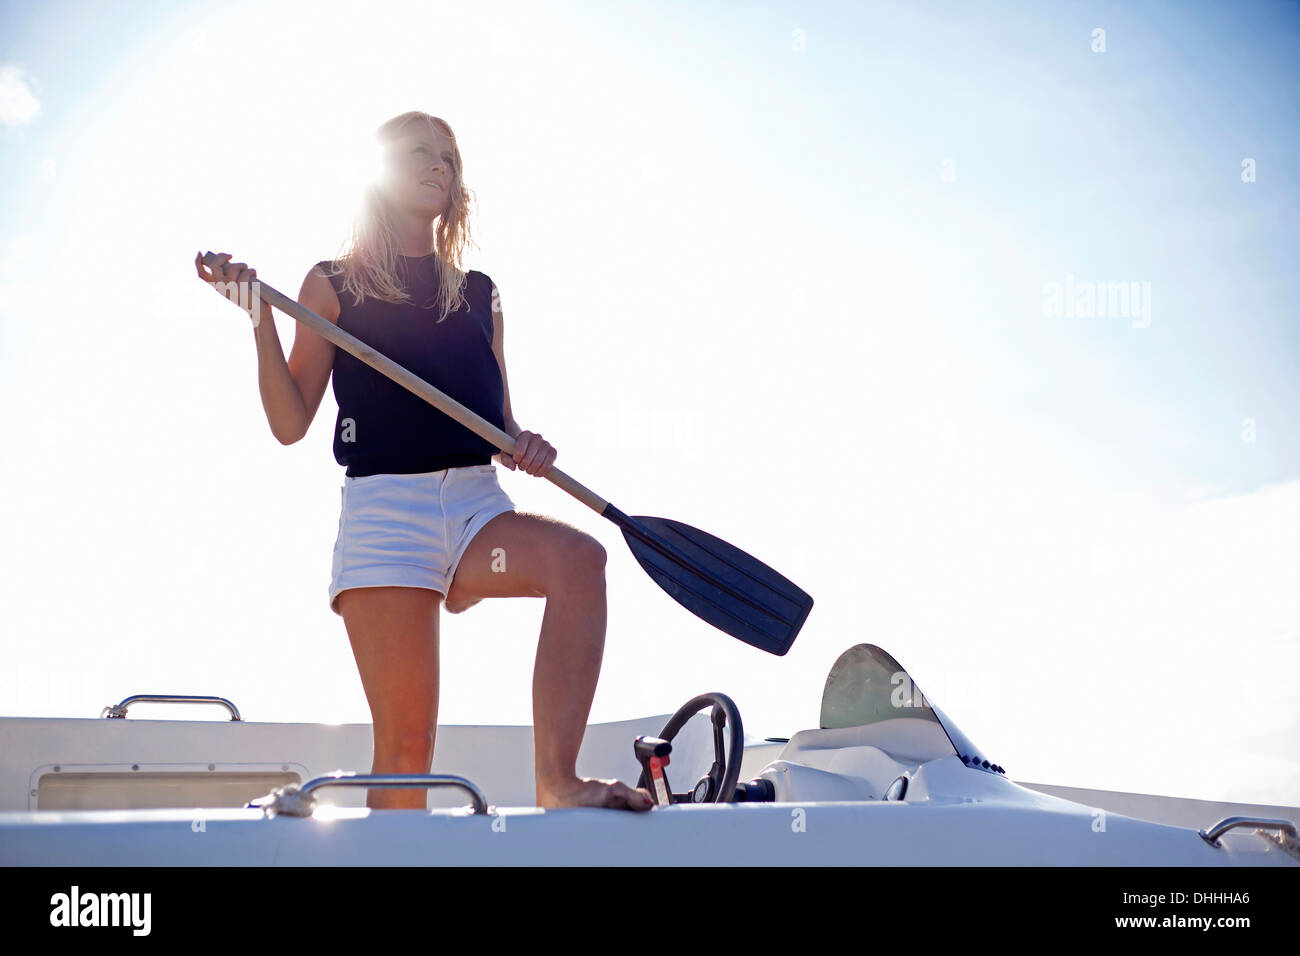 Woman standing holding oar on yacht, Wales, UK - Stock Image